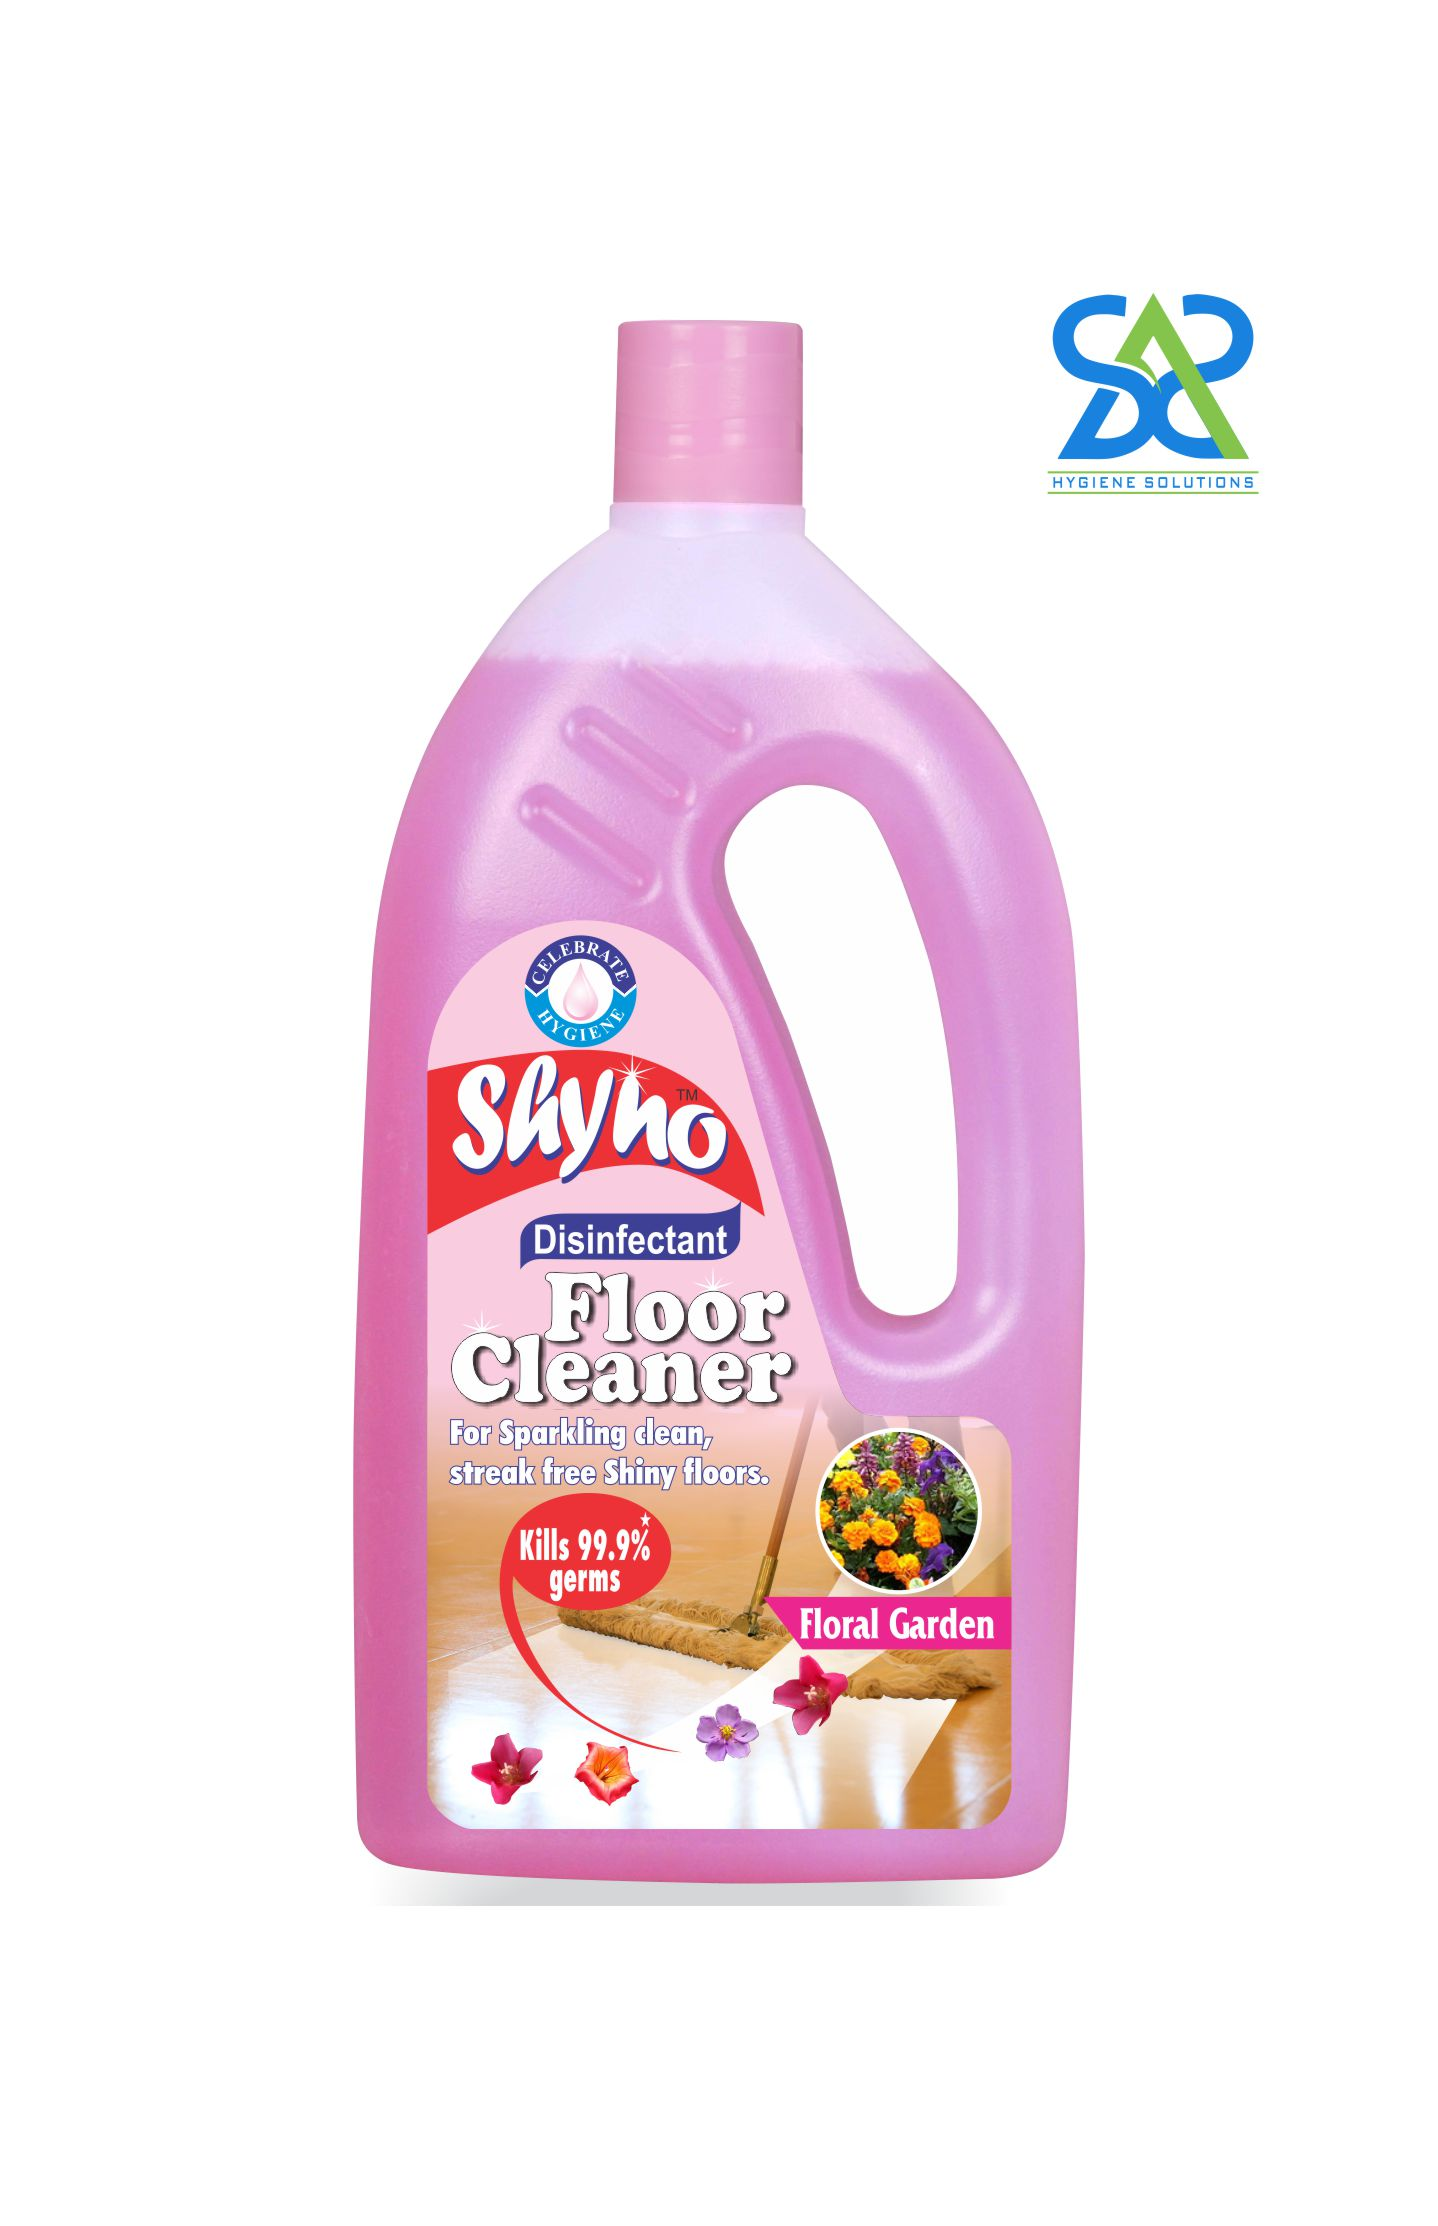 Shyno Disinfectant Floor Cleaner, 475 ml - Floral Garden